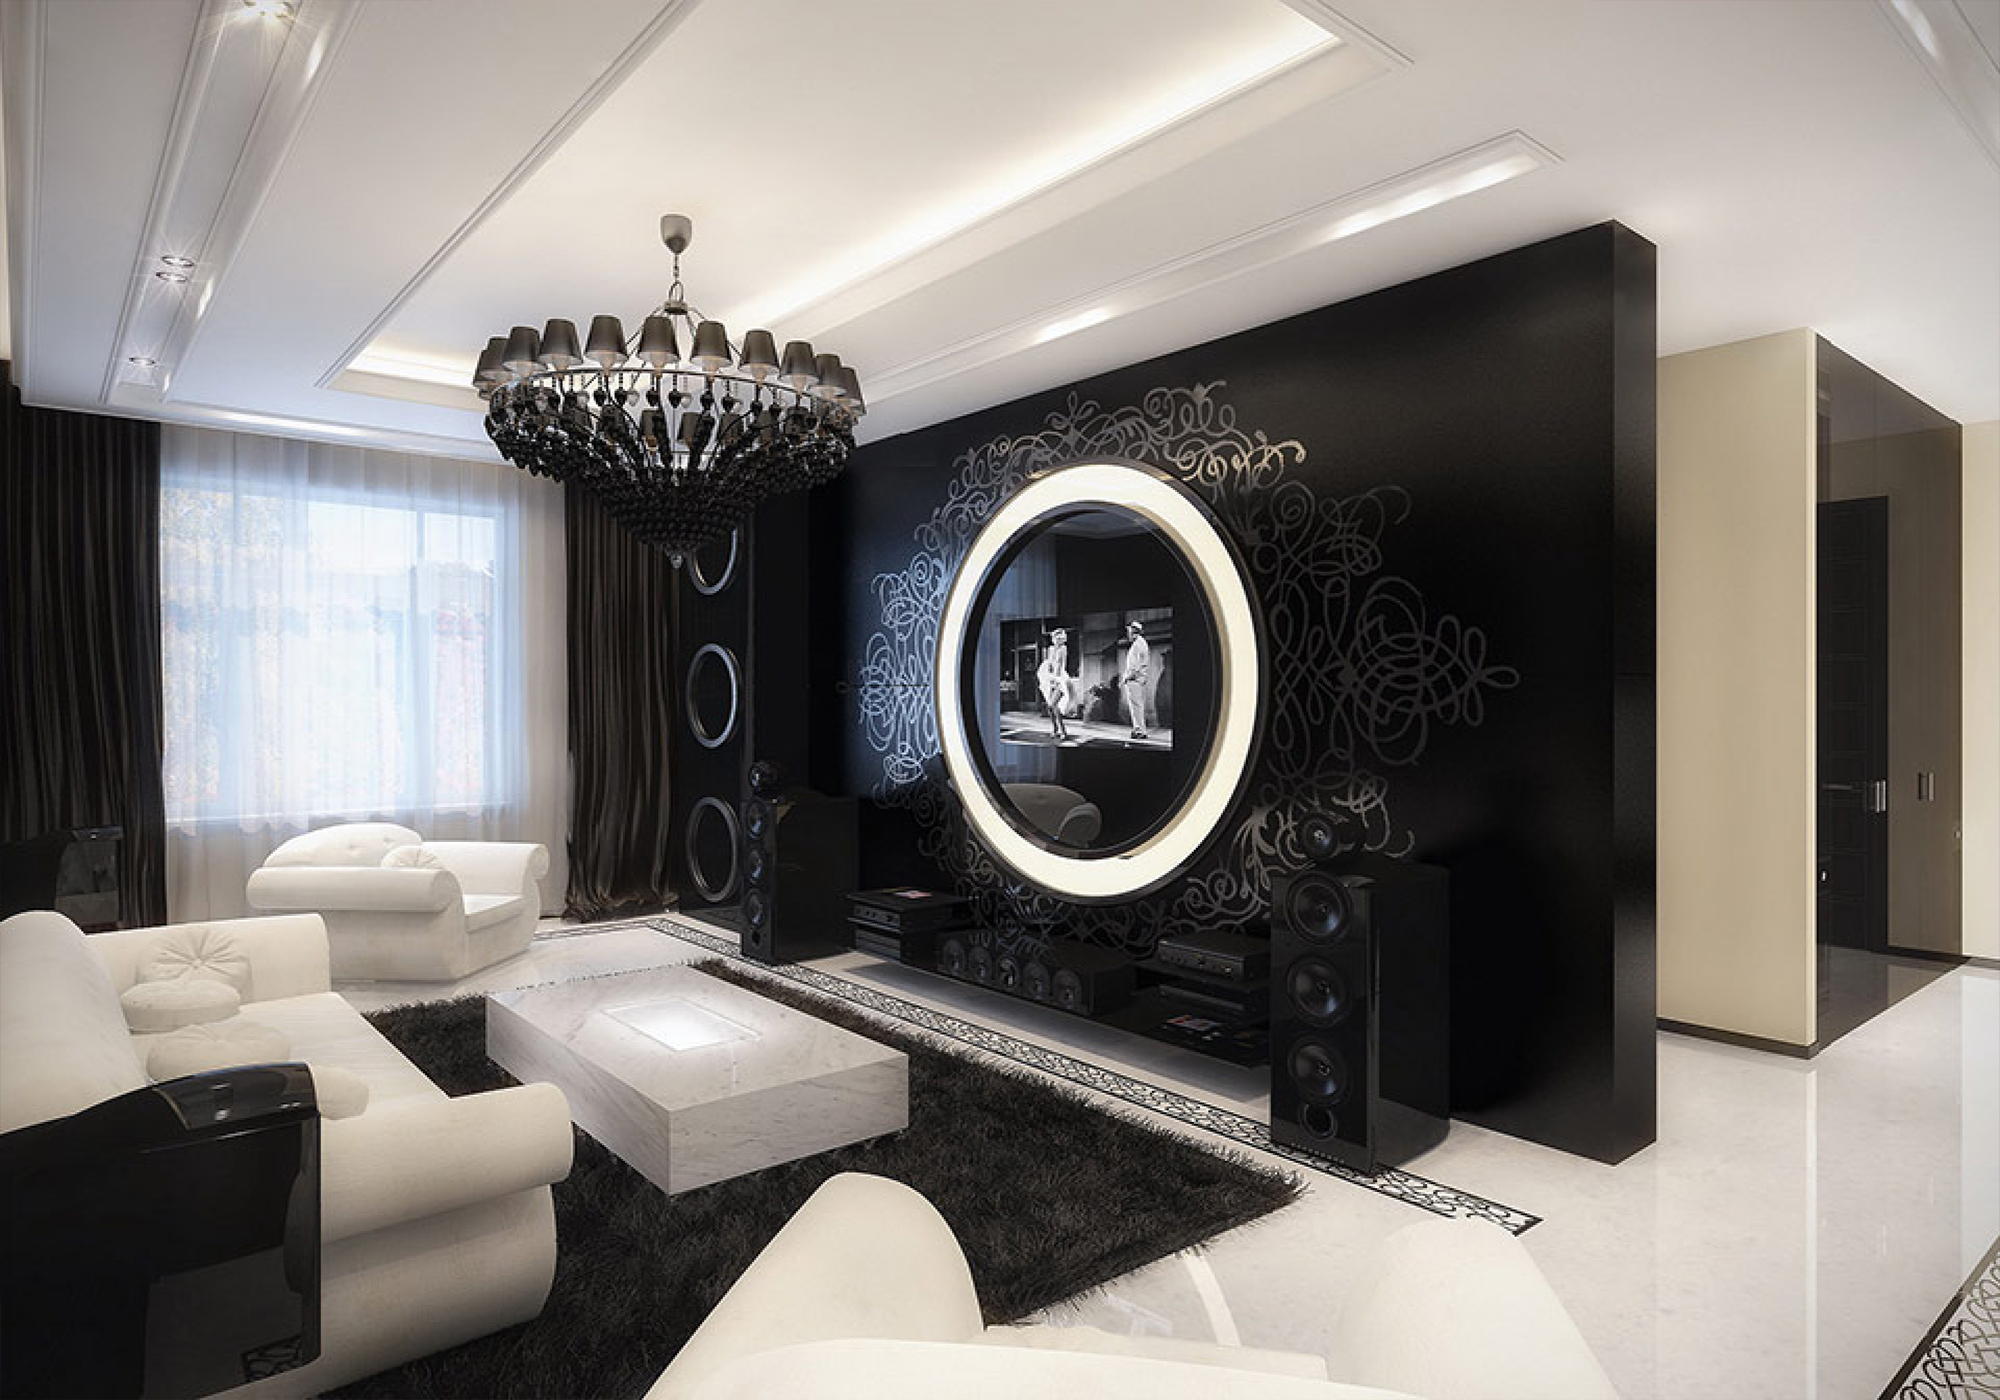 Best of Black and White Modern Living Rooms (7) black and white modern living rooms Best of: Black and White Modern Living Rooms Best of Black and White Modern Living Rooms 7